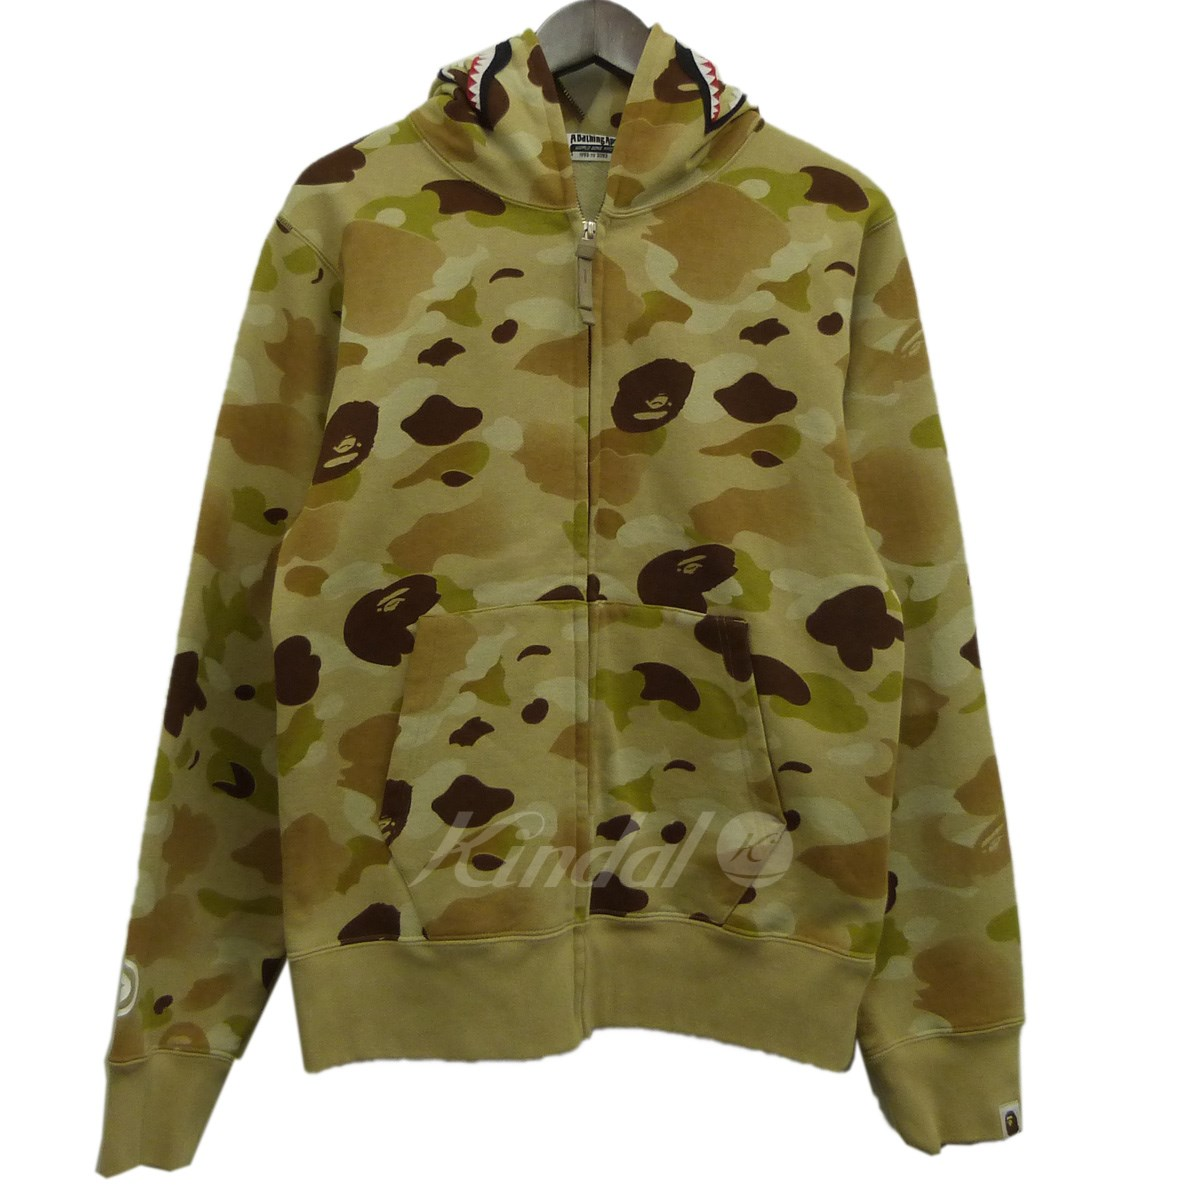 トップス, パーカー A BATHING APE 18SSGRADATION CAMO SHARK FULL ZIP HOODIE 140629 KIND1854